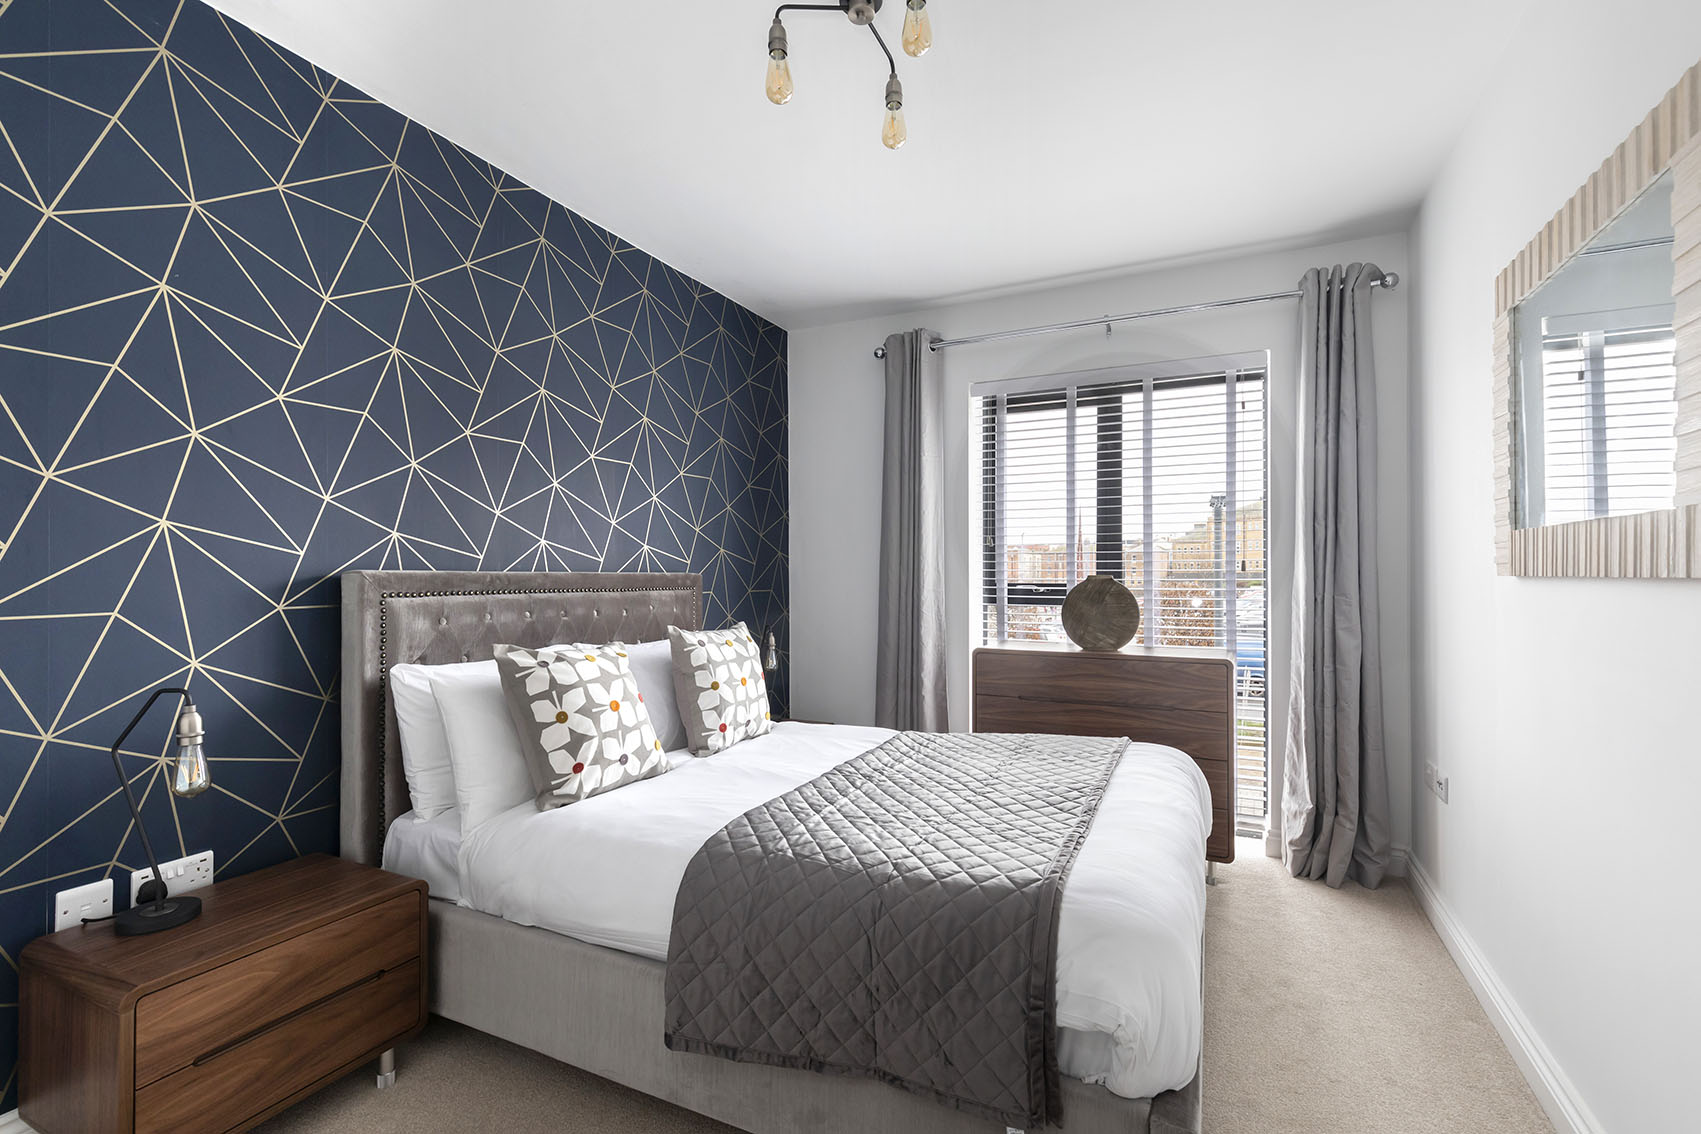 Bed at Mariners Court Apartment, The Docks, Gloucester - Citybase Apartments